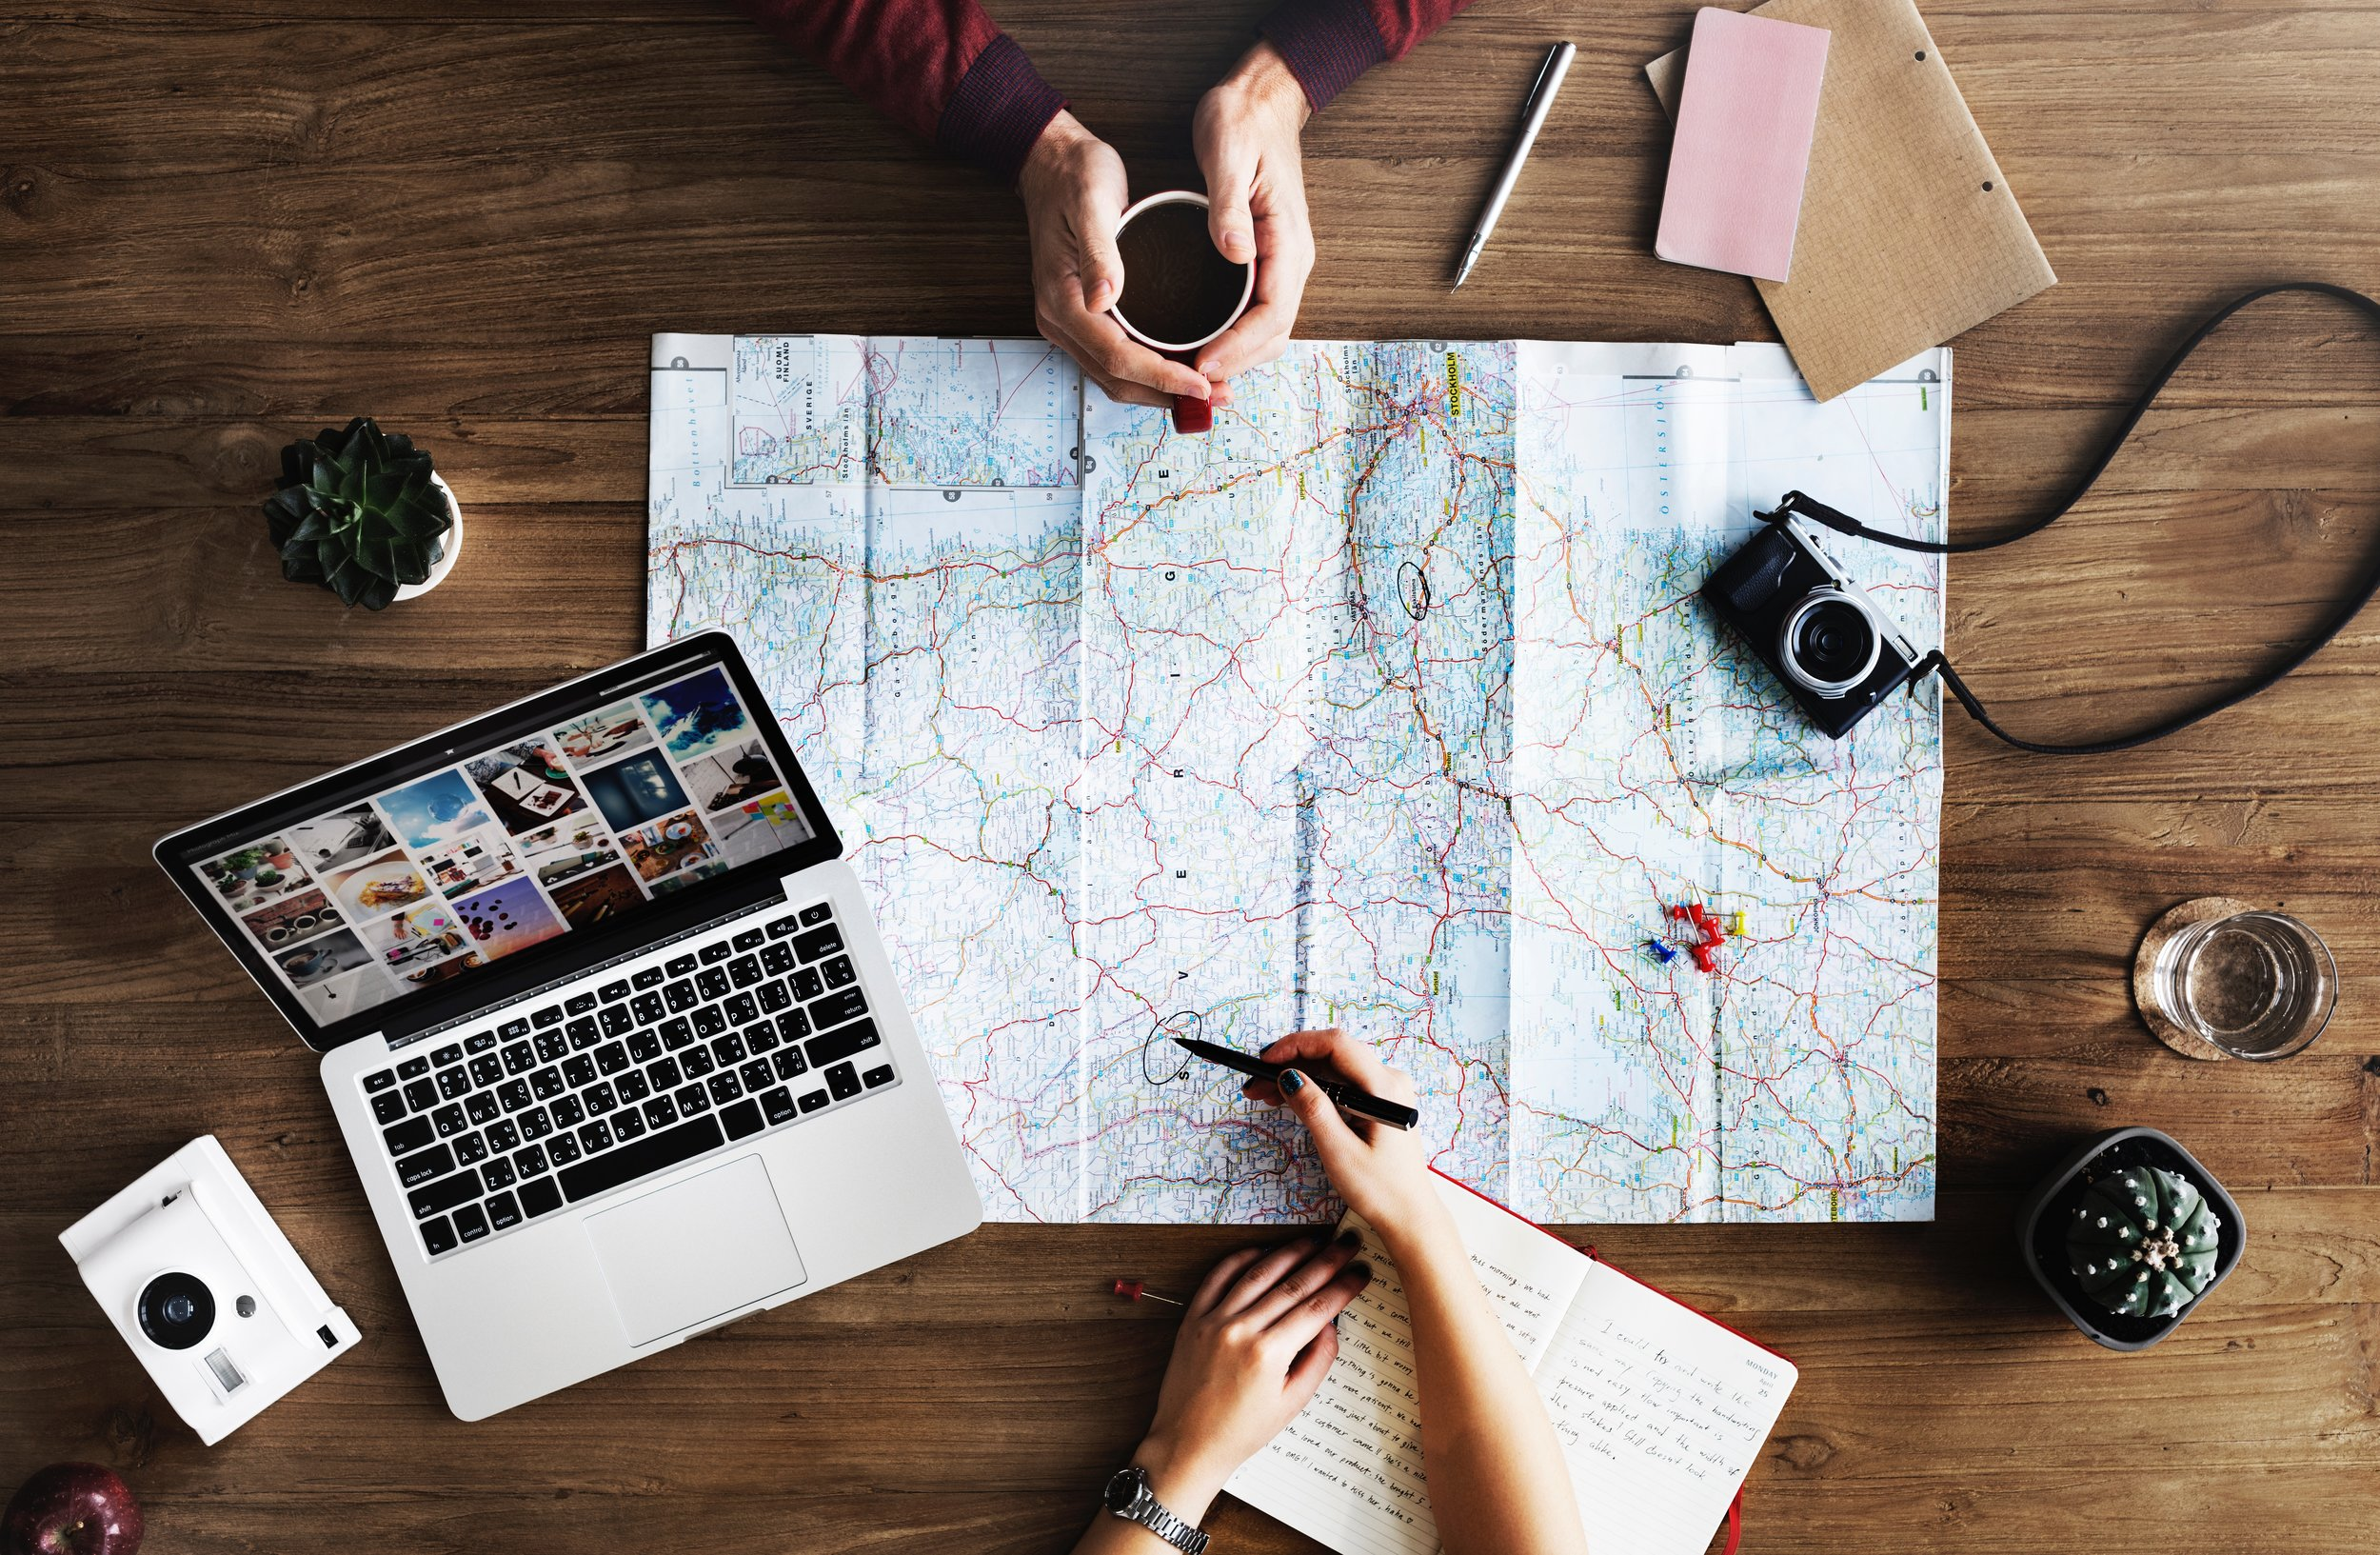 Reasons You Should Research Before Actually Travelling to a Place